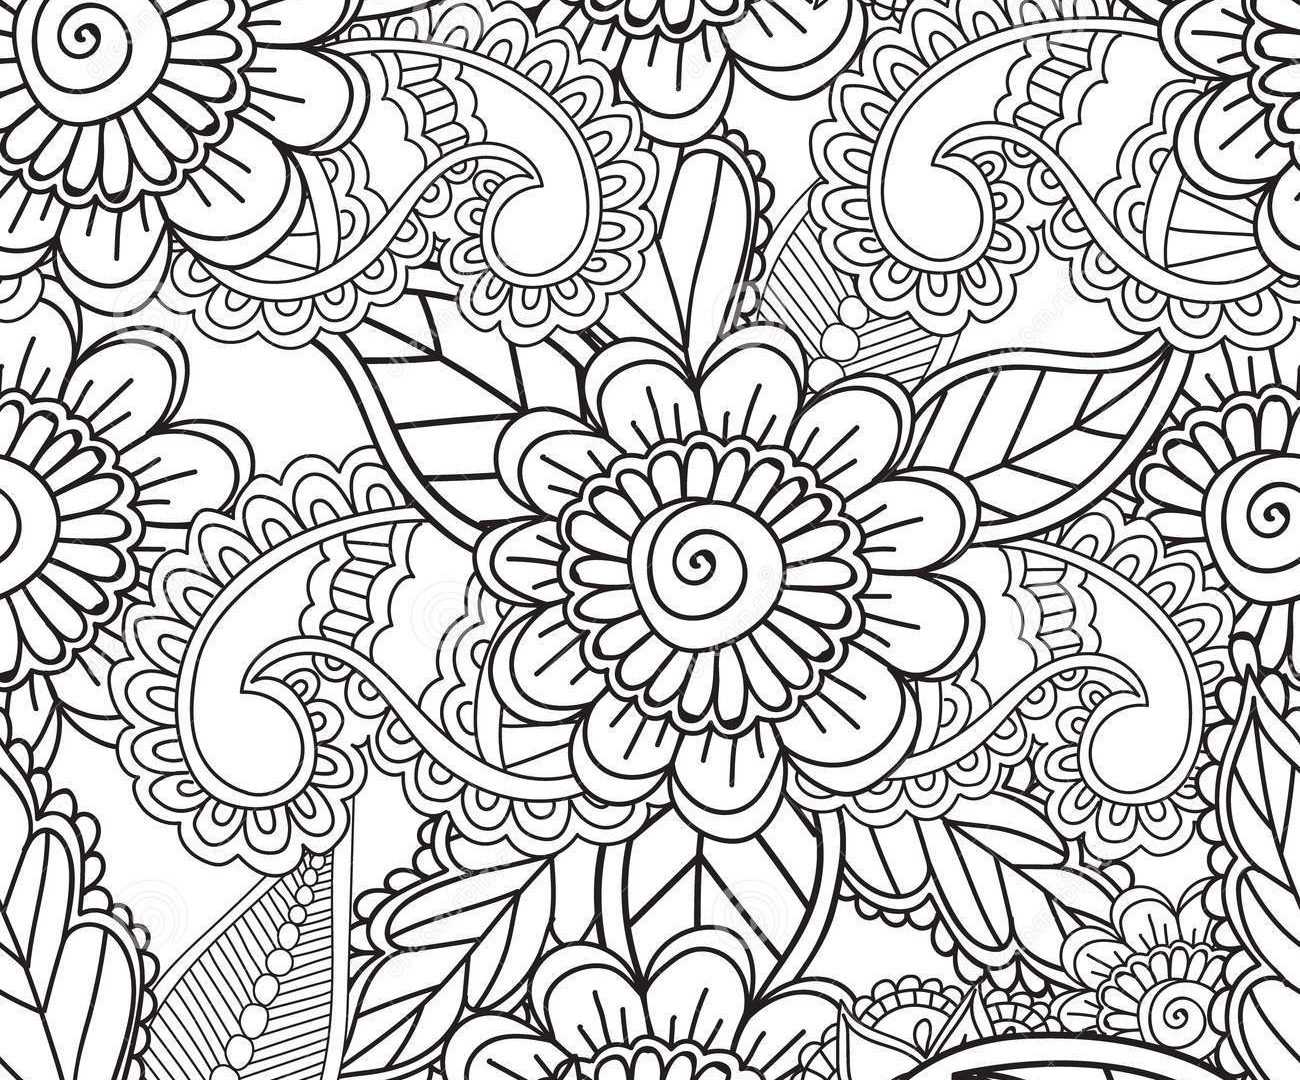 Coloring Pages Adults Free for Pdf Swear Words Sheetsables Colouring Gallery Of Stress Relief Coloring Pages Animals Funny Coloring Pages Printable